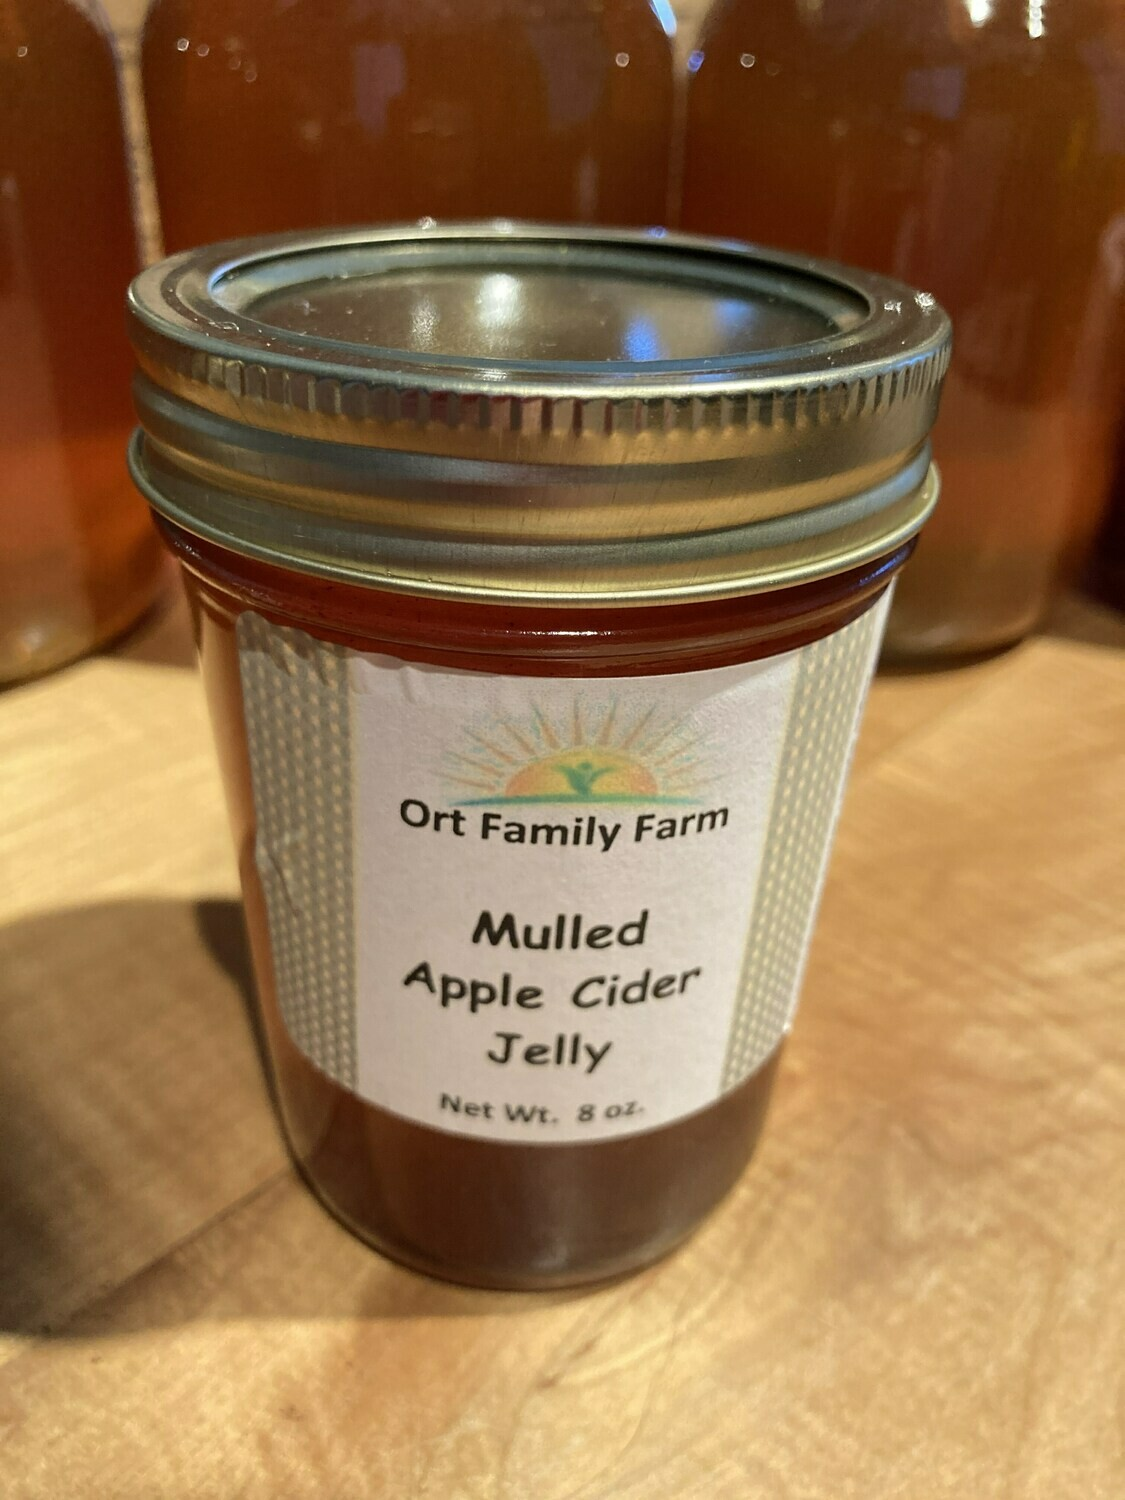 Mulled Apple Cider Jelly 8 oz